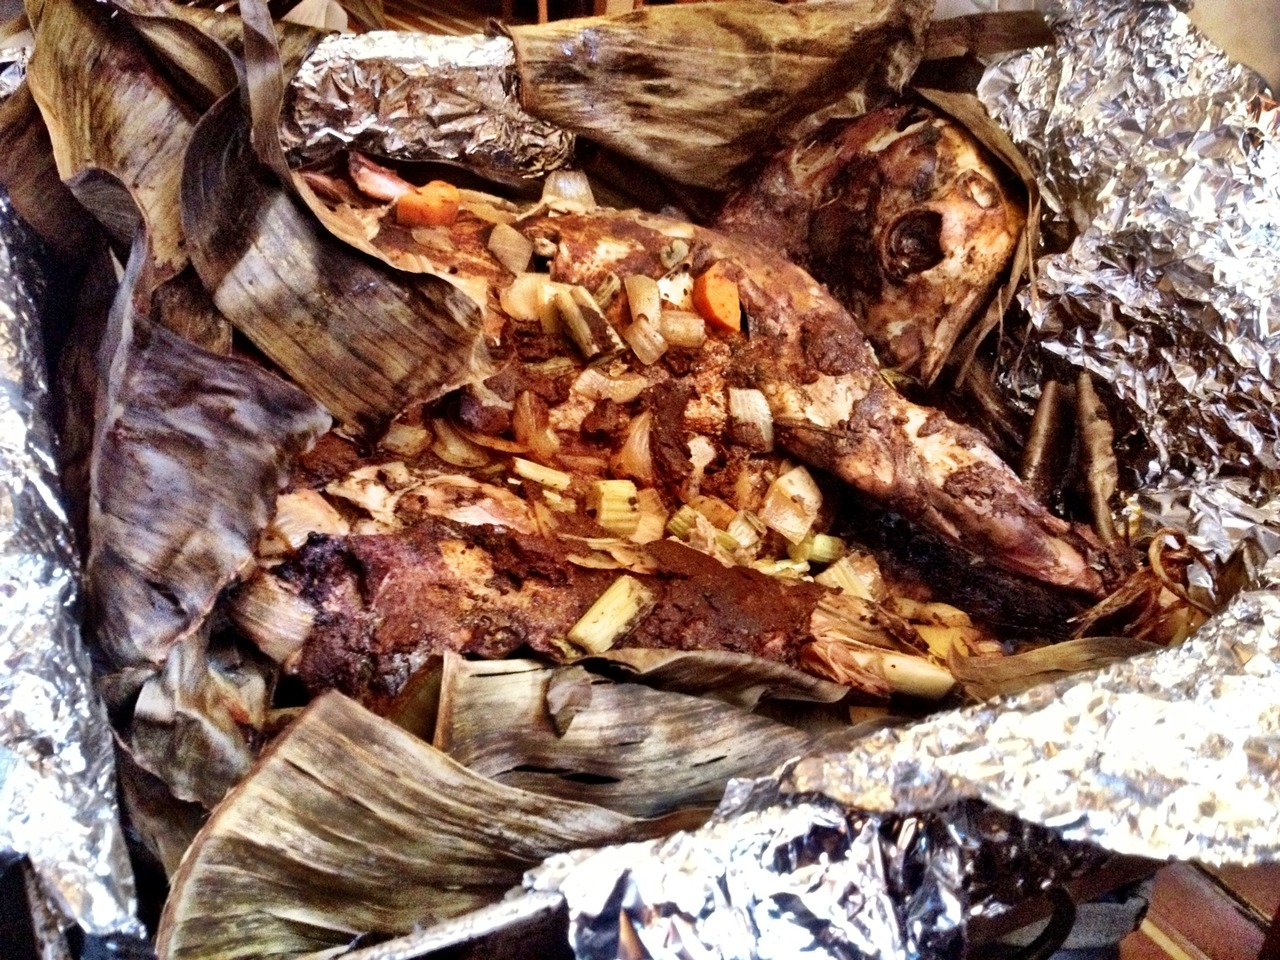 Whole Roasted Goat wrapped in banana leaf and slow roasted 6 hours. This may be our Sunday special.